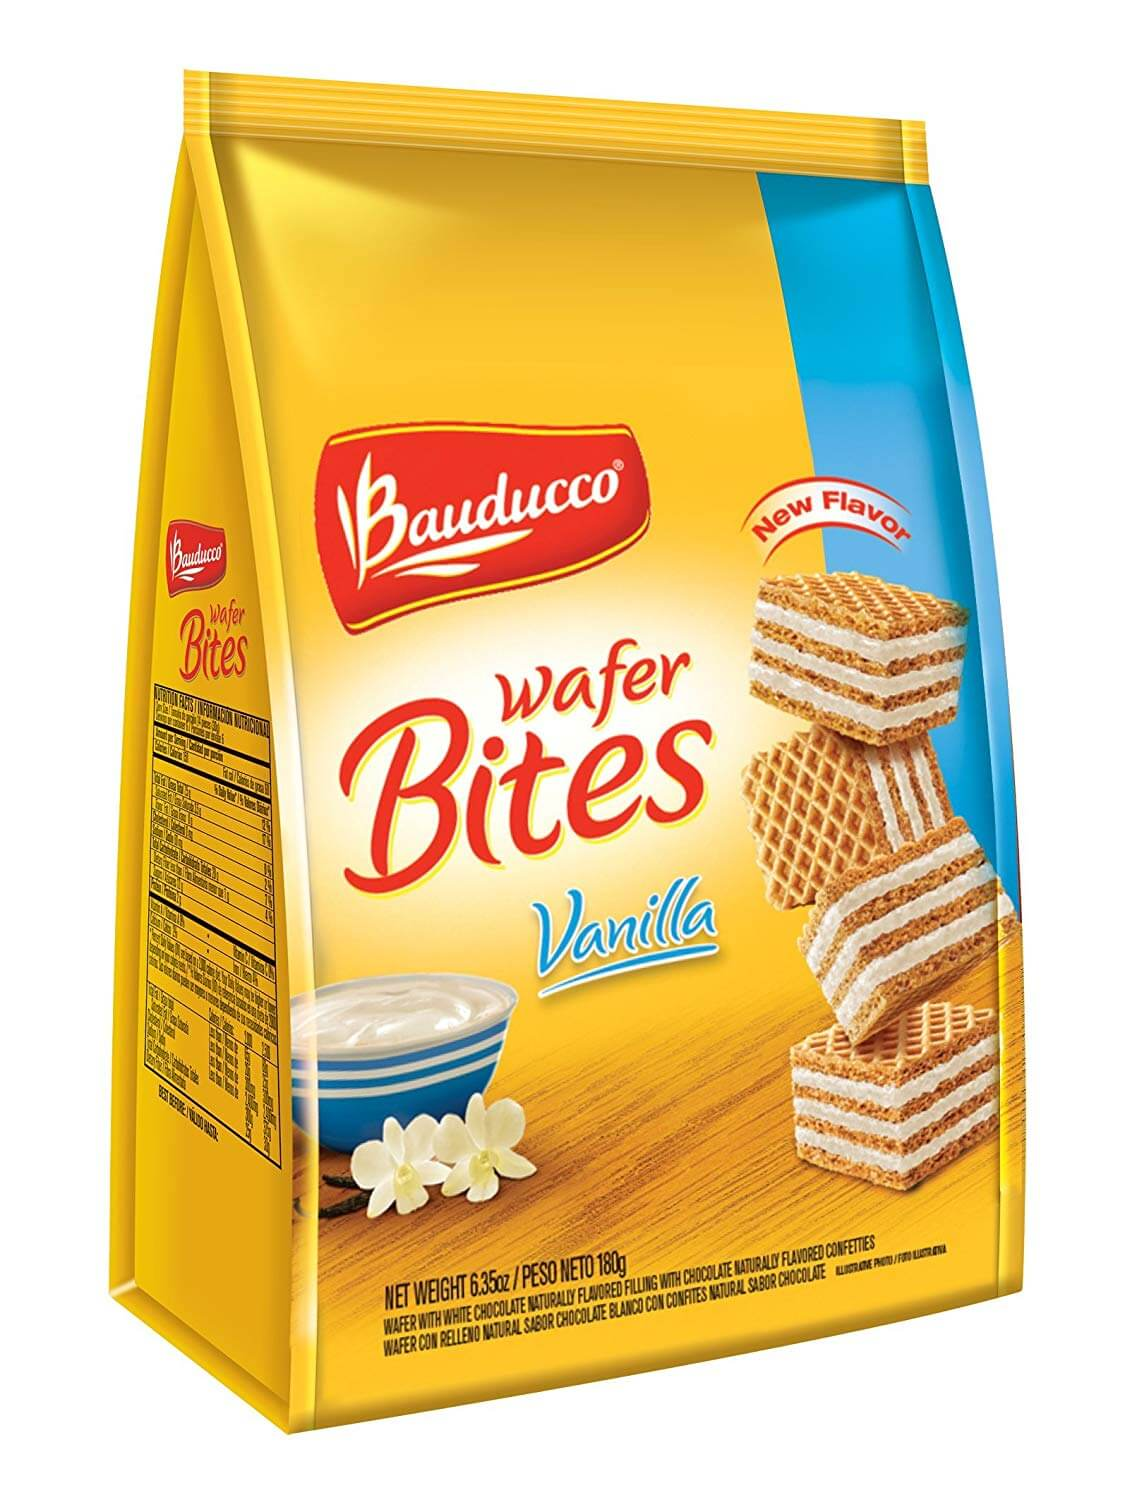 bauducco wafer bites with vainilla  180g